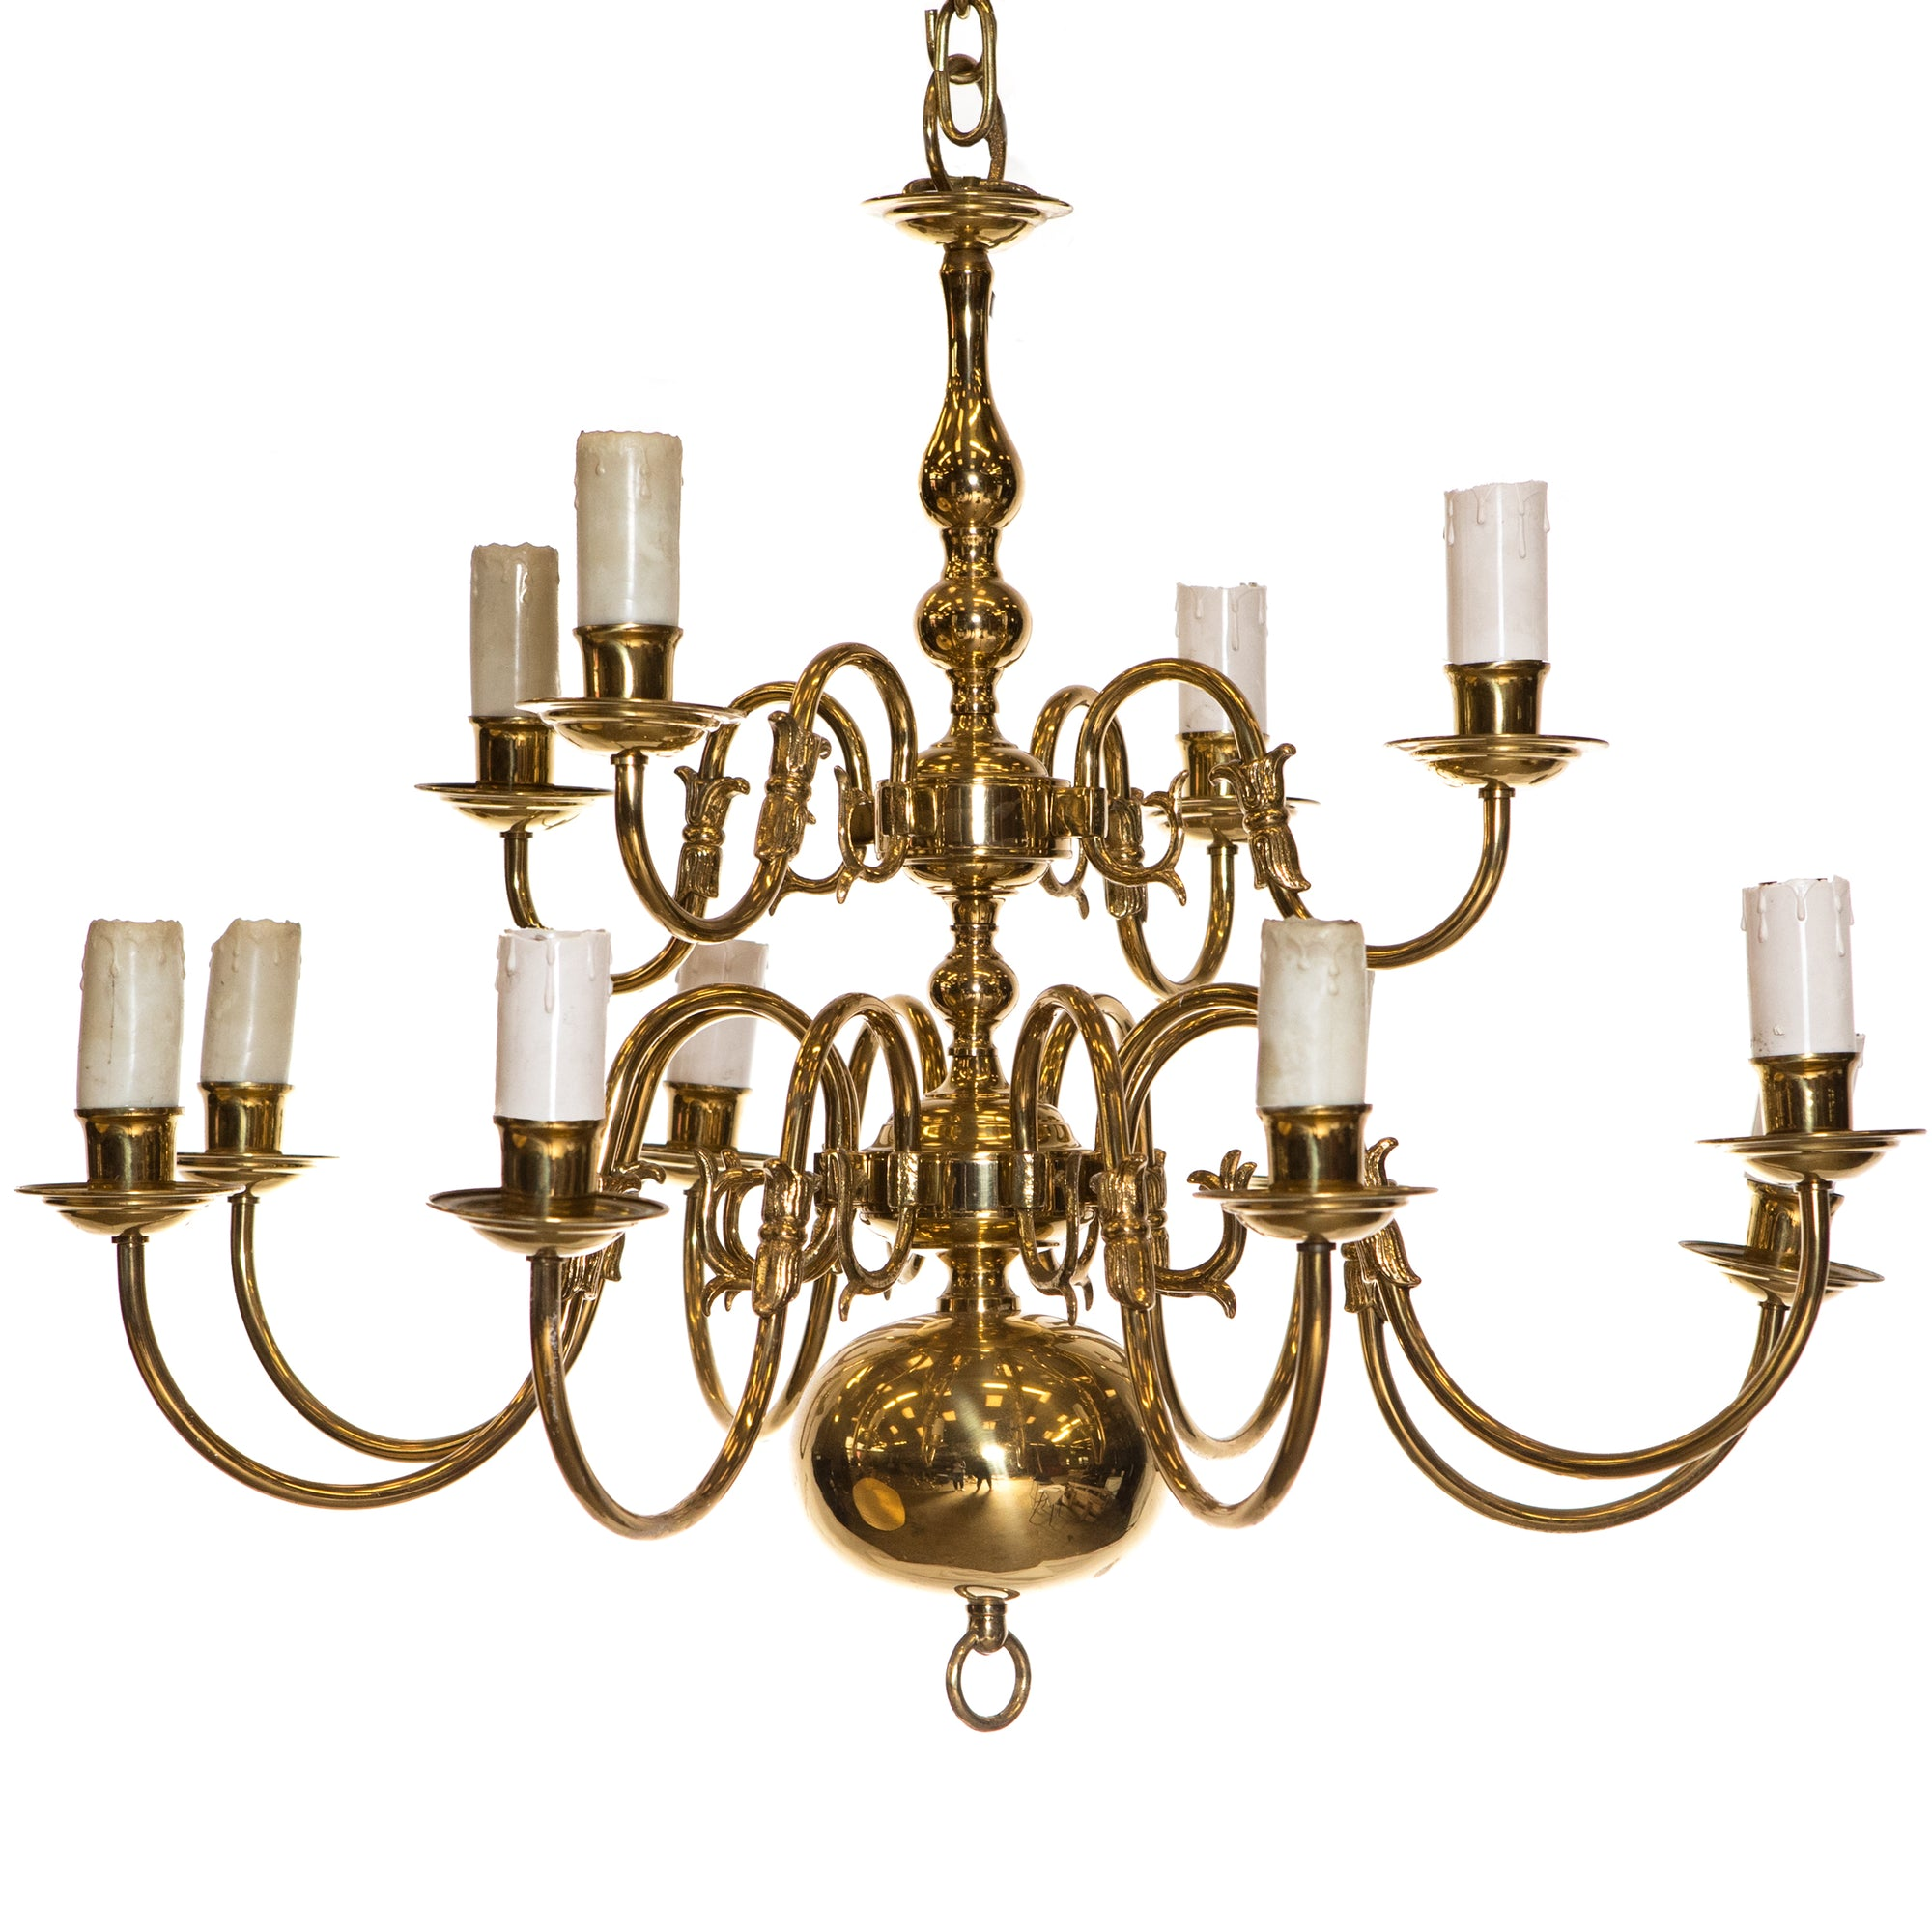 Reclaimed Dutch Style 2 Tier | 12 Arm Tier Brass Chandelier